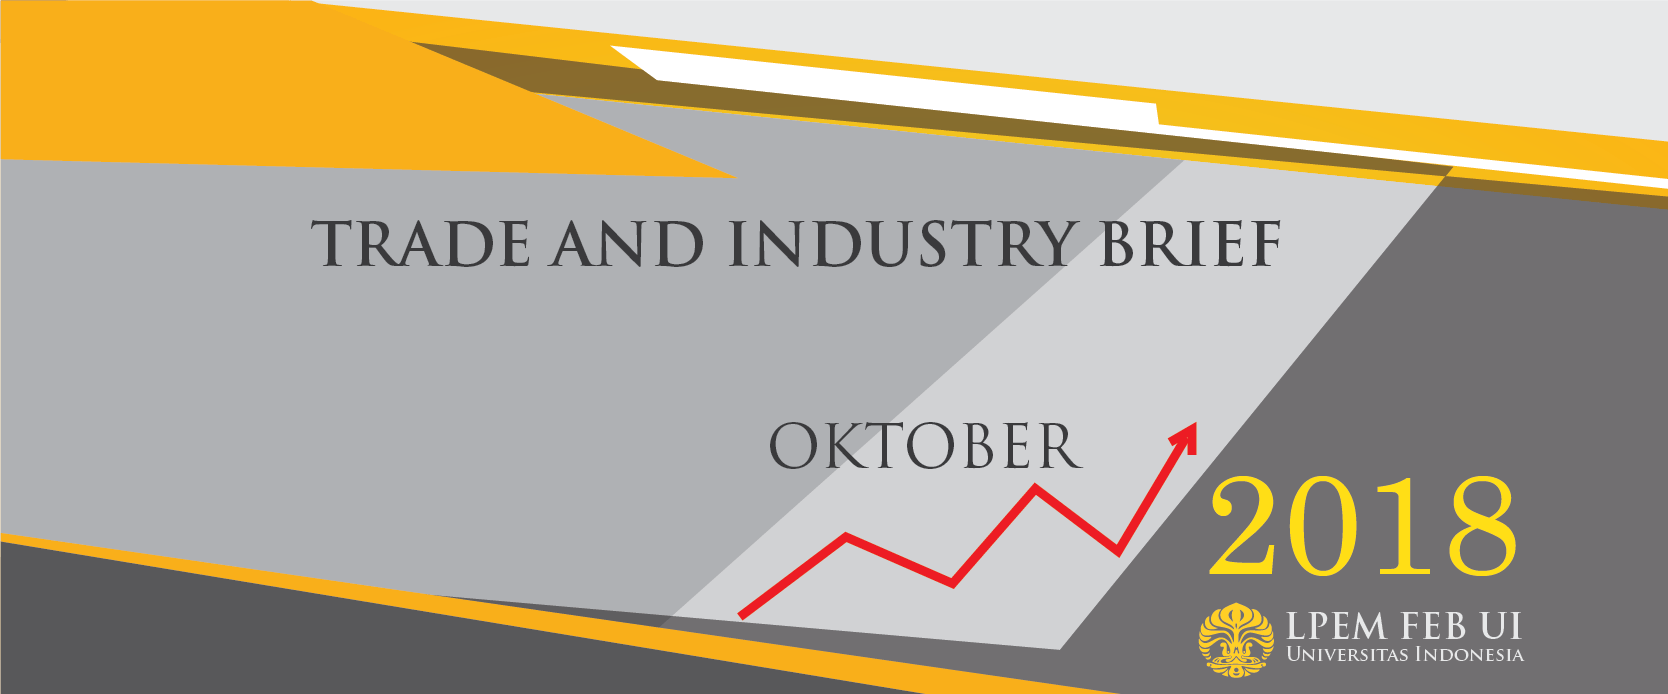 SERI ANALISIS EKONOMI: TRADE AND INDUSTRY BRIEF,  Oktober 2018